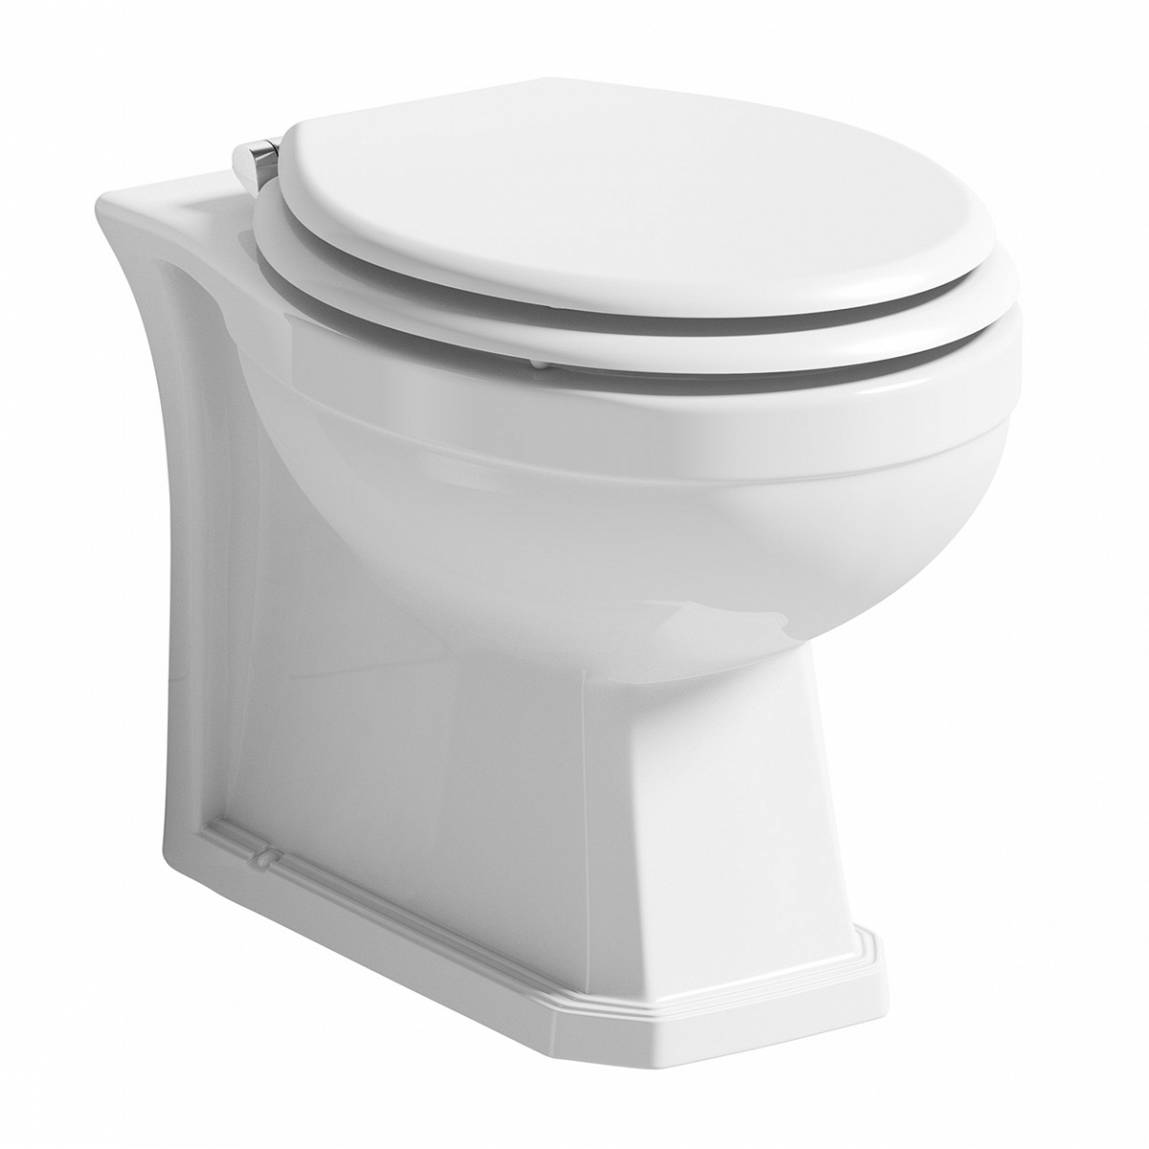 Image of Regency Back to Wall Toilet inc Luxury White MDF Seat